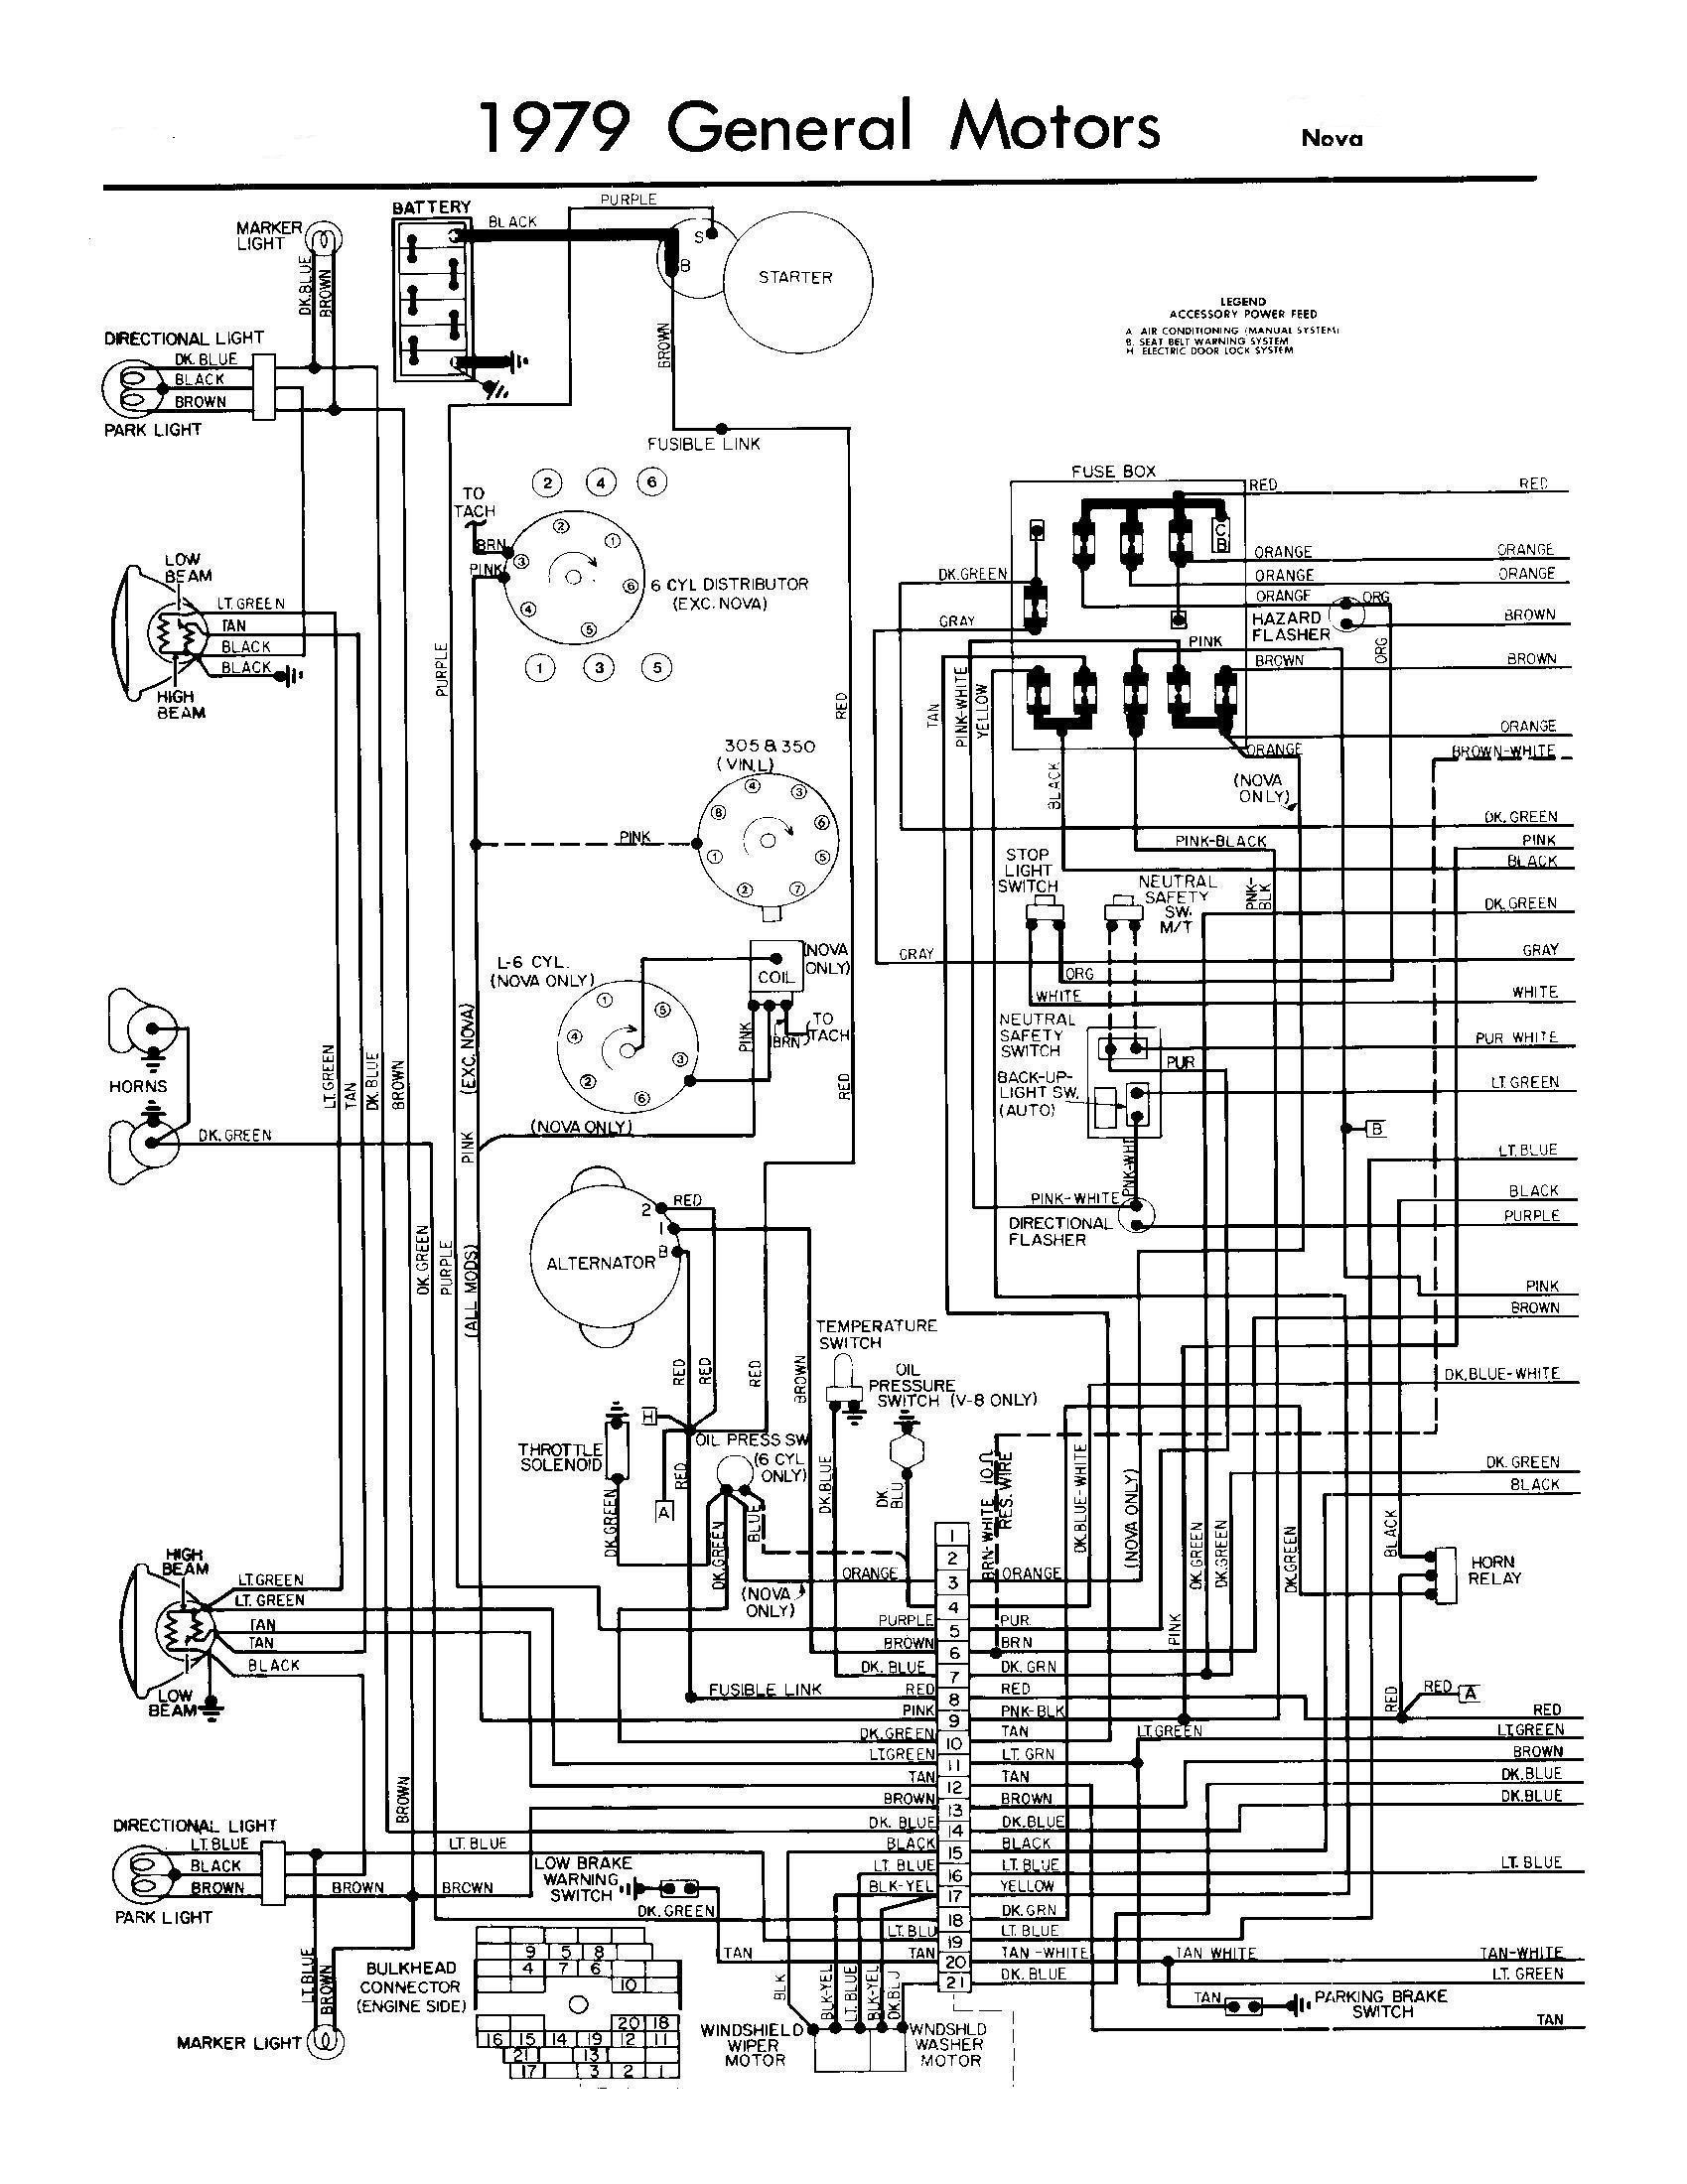 1979 gmc truck wiring wiring diagram detailed 2006 GMC Radio Wiring Diagram 1979 gmc truck wiring wiring diagram data 1985 gmc truck wiring diagram 1979 gmc truck wiring